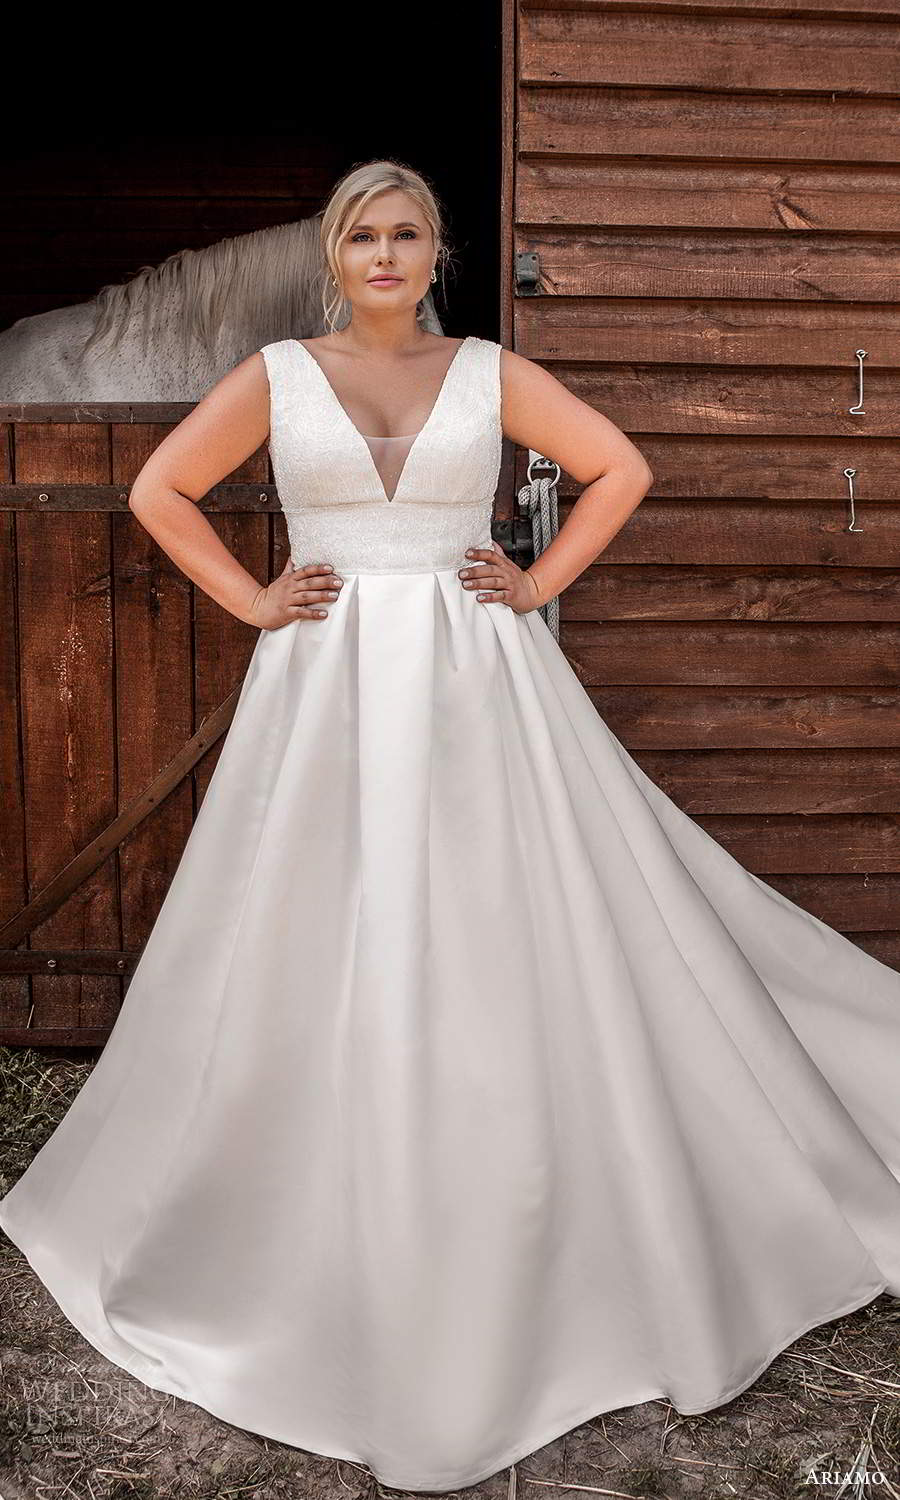 ariamo 2021 plus bridal sleeveless thick straps plunging v neckline embellished bodice a line ball gown wedding dress chapel train (11) mv